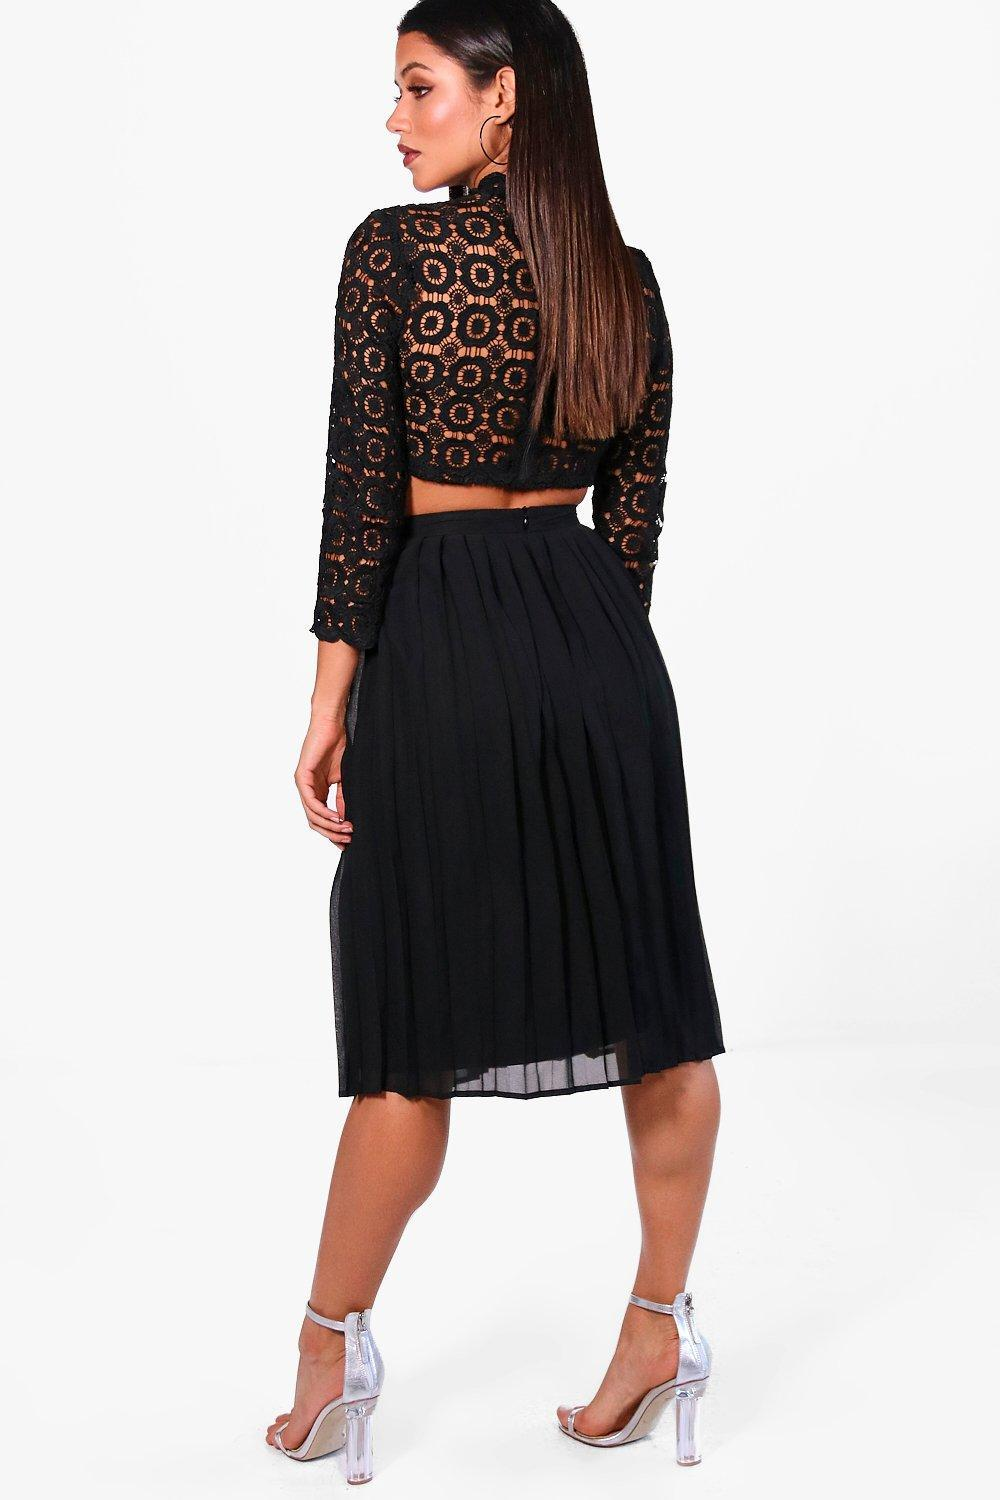 d717248691 Boohoo - Black Boutique Lace Top And Midi Skirt Set - Lyst. View fullscreen